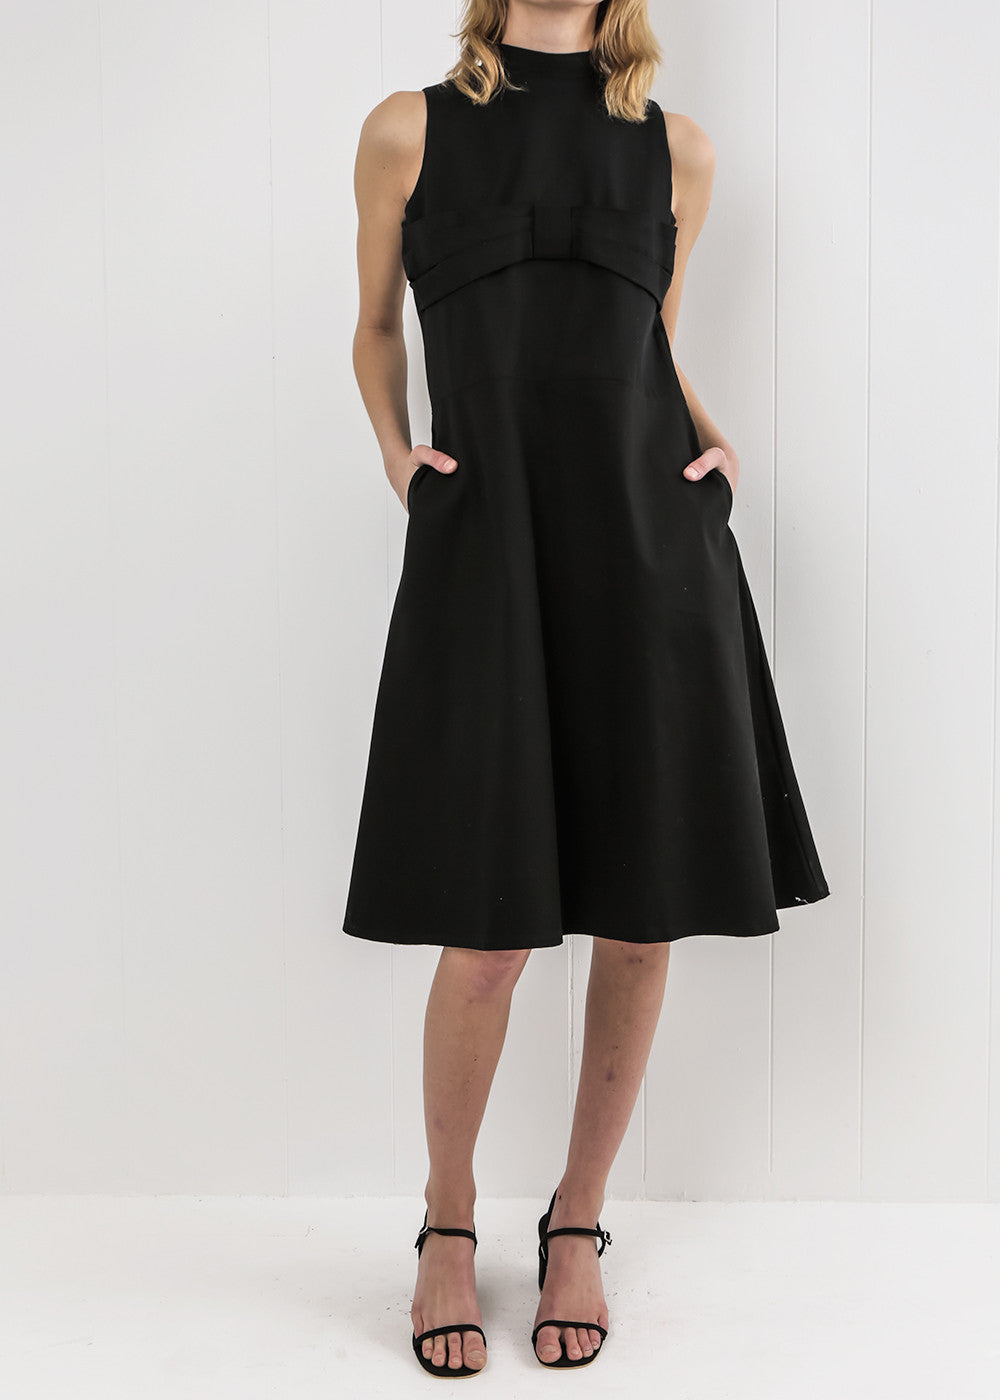 Toit Volant Black Lola II Dress — Shop sustainable fashion and slow fashion at New Classics Studios